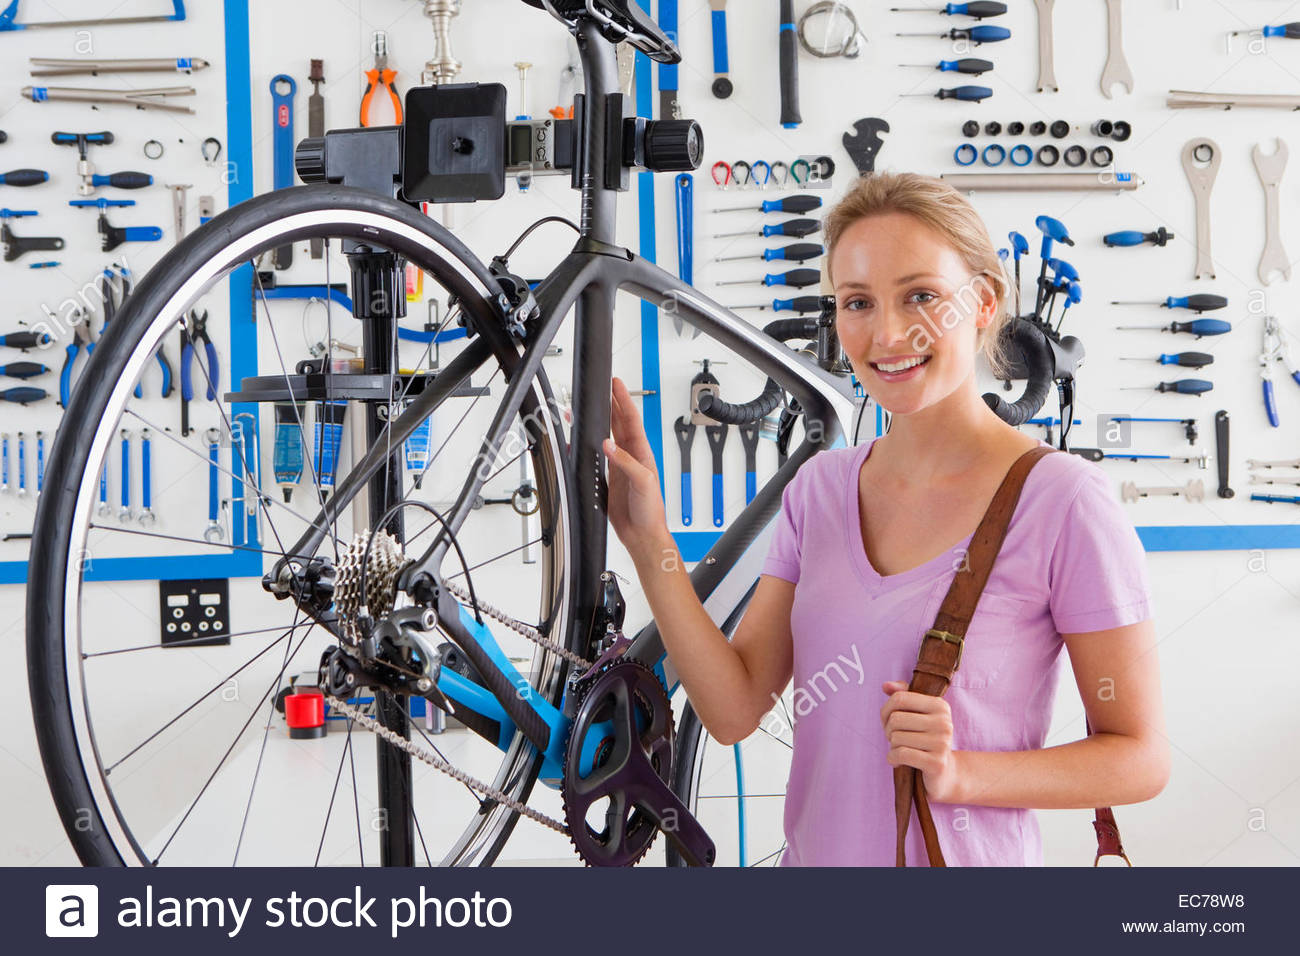 Customers with bicycle in workshop - Stock Image